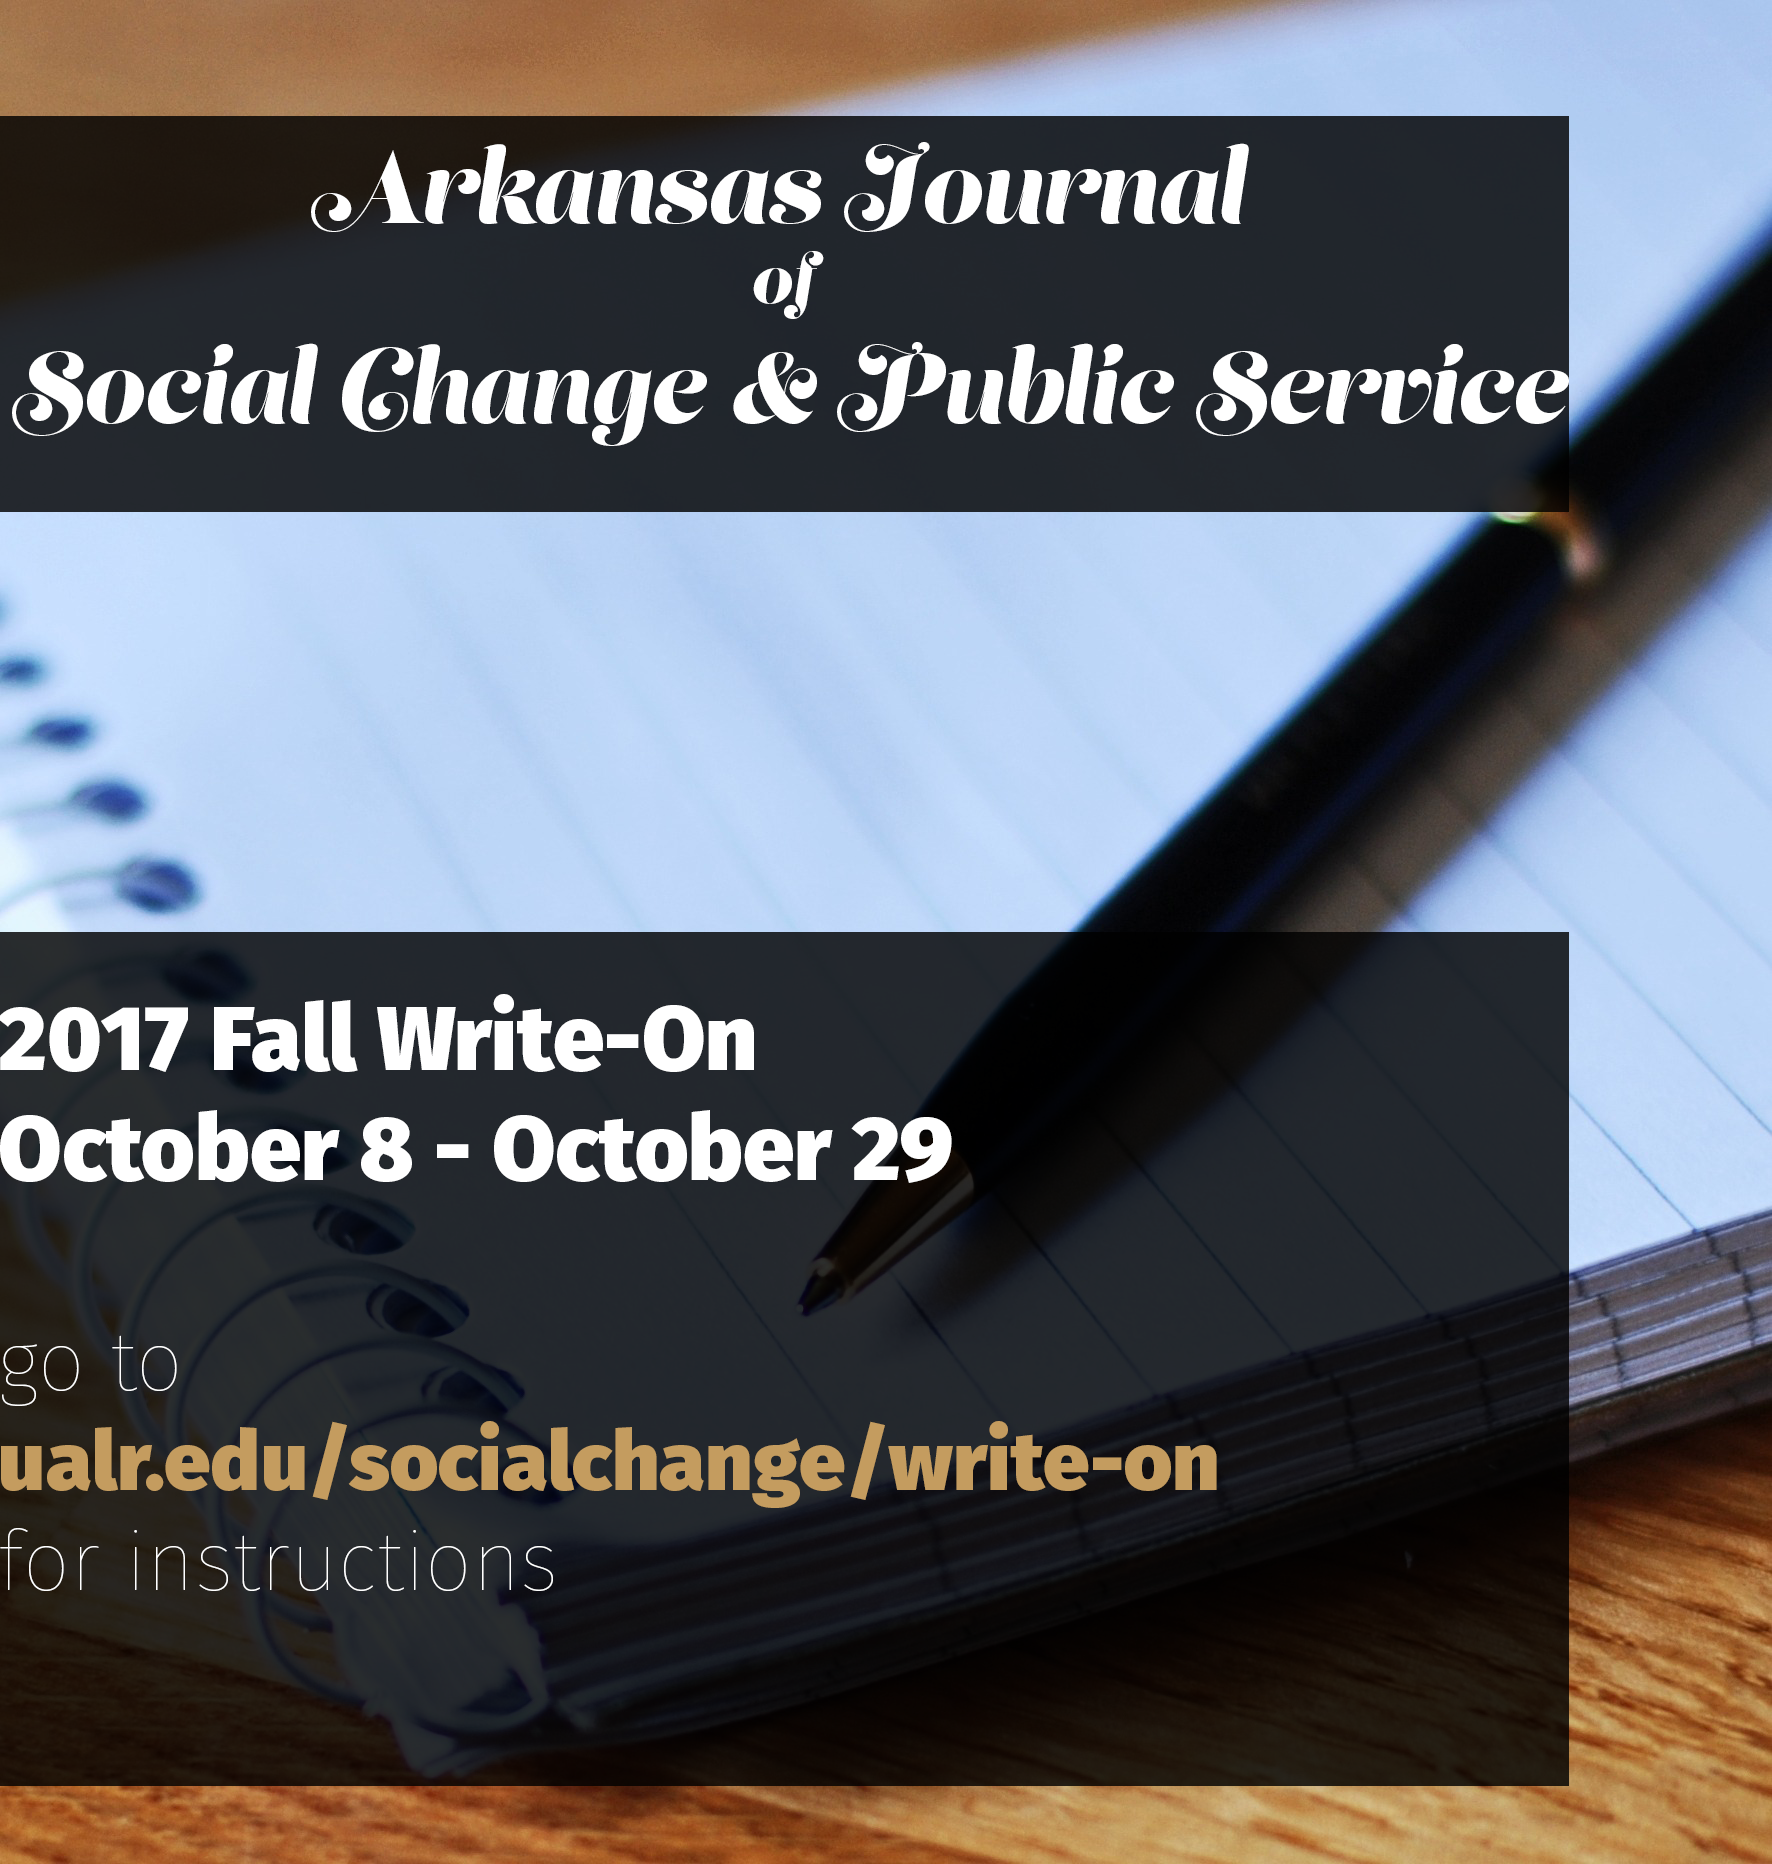 The Journal is hosting its Fall 2017 application period until October 29